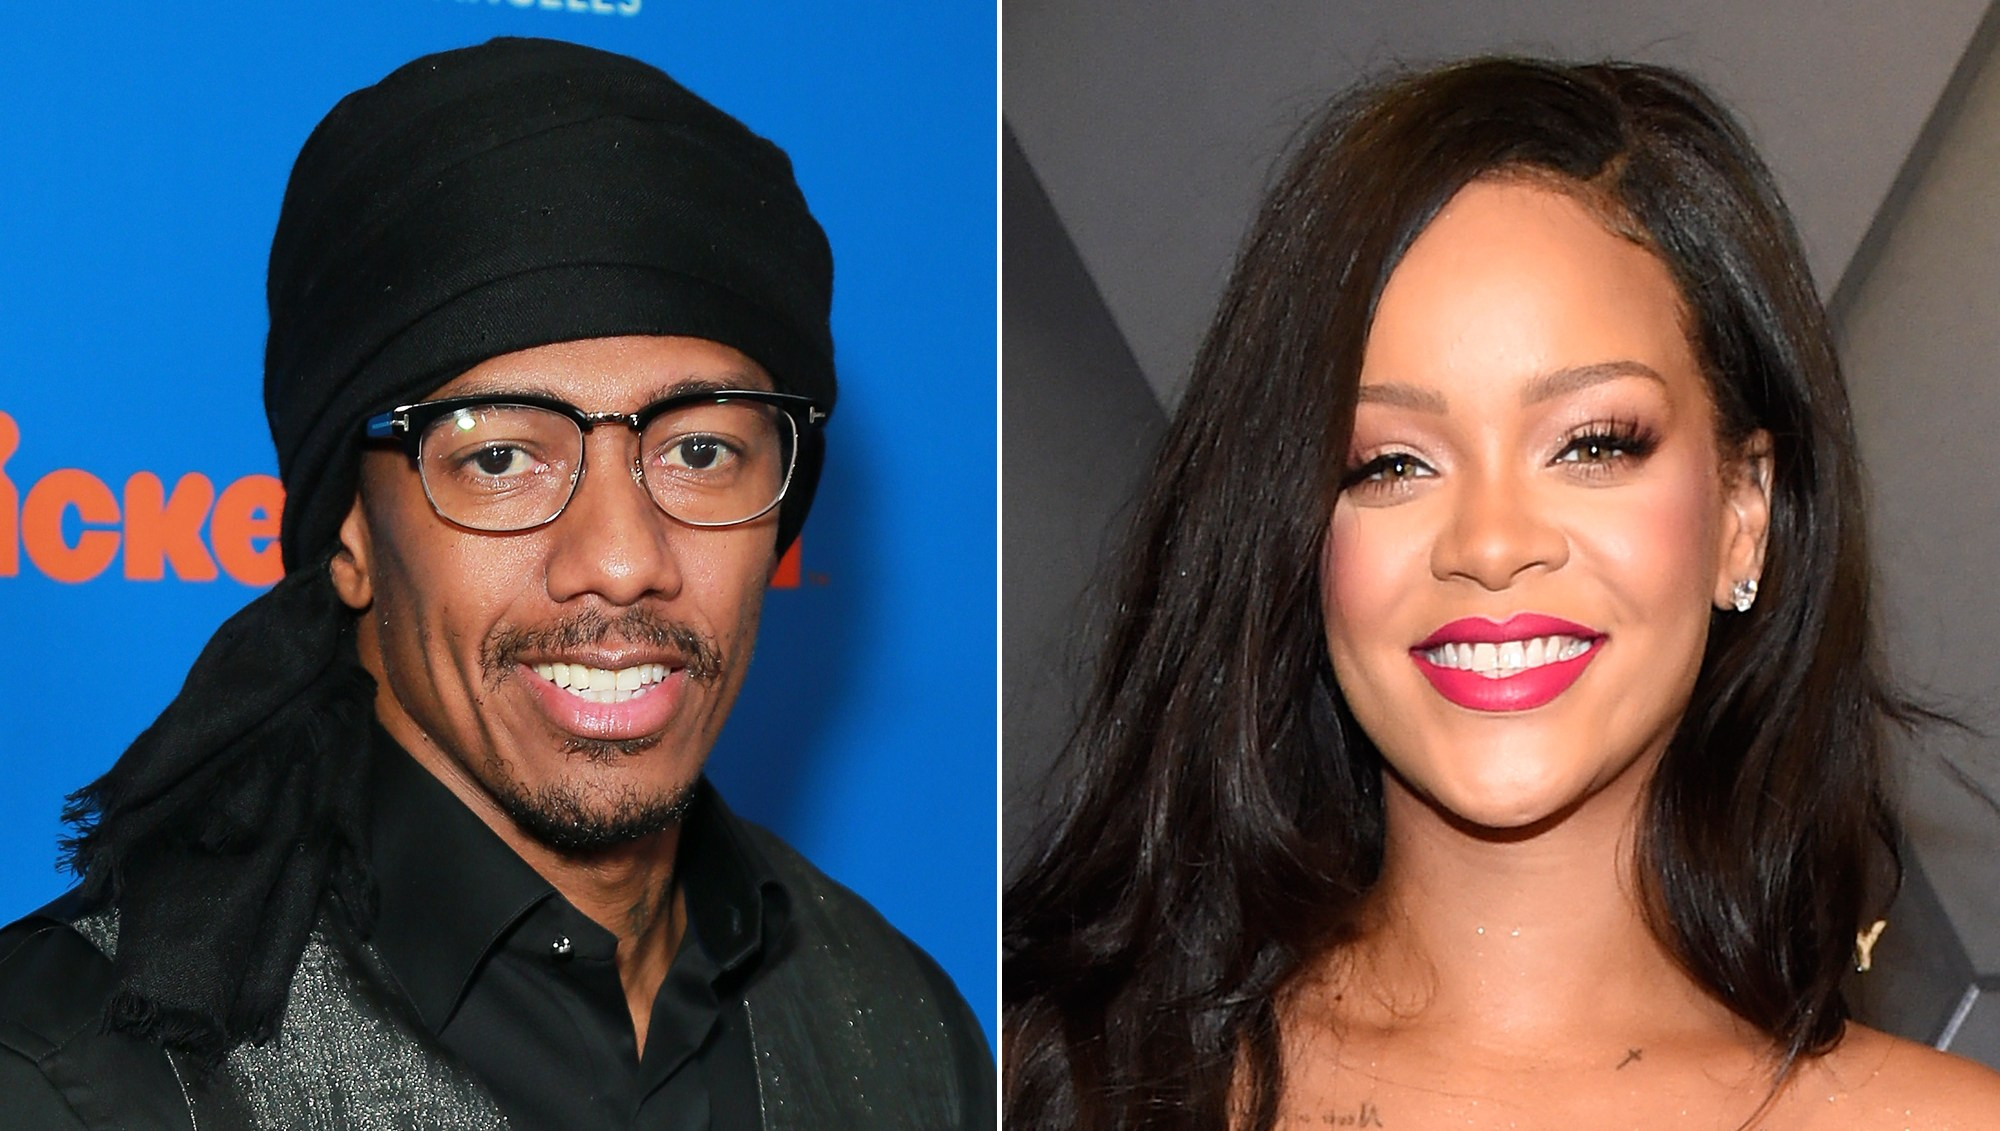 Nick Cannon Tells Queen Rihanna He Wants to Be Her Dress